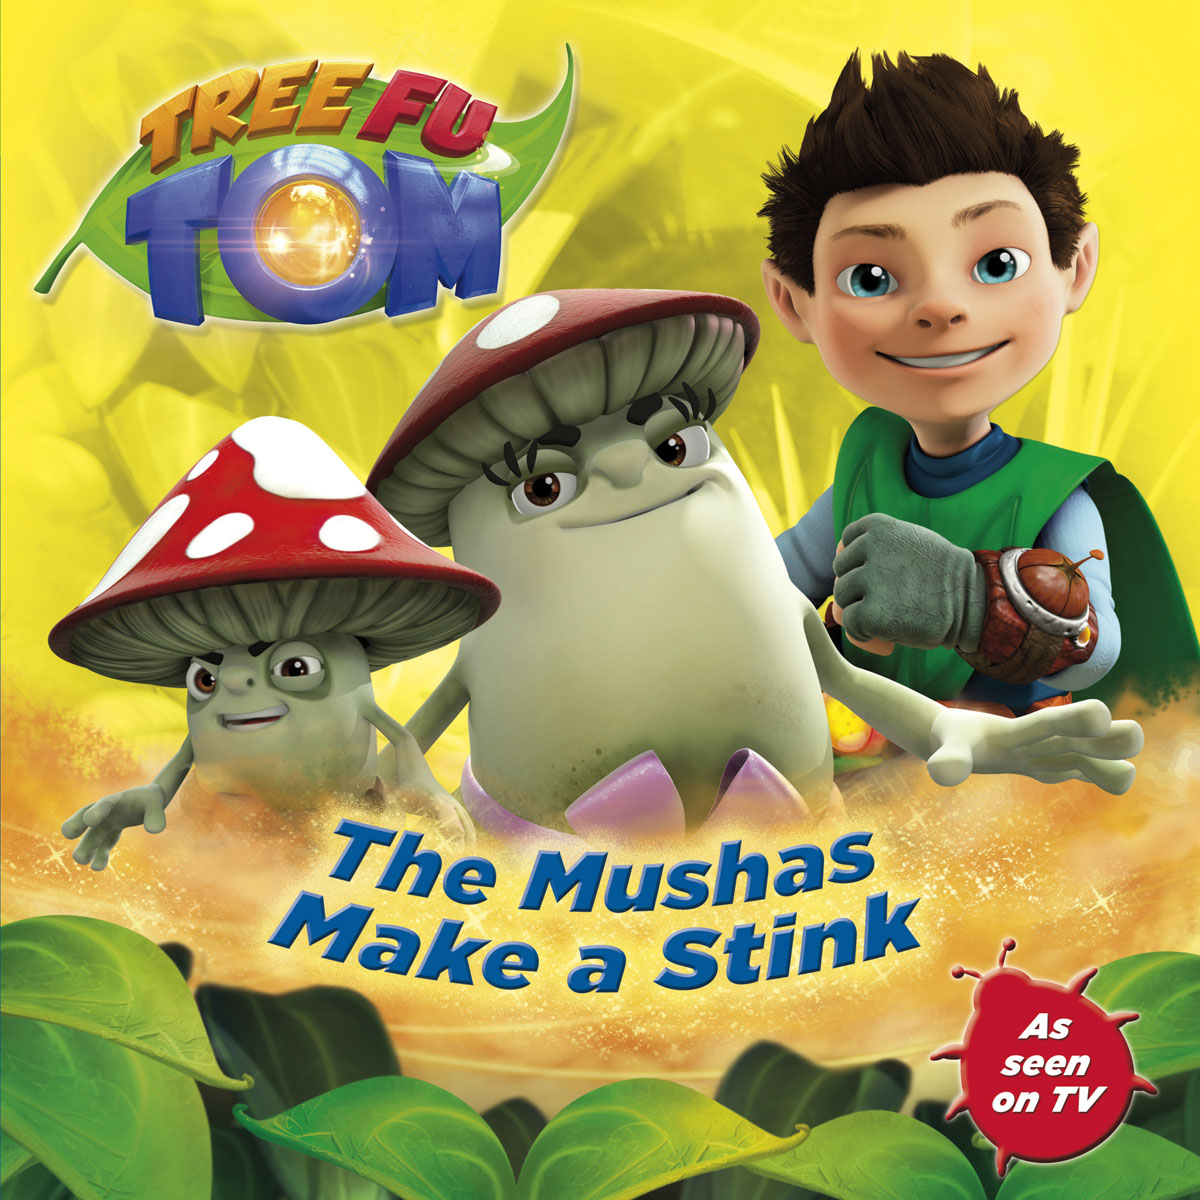 Tree Fu Tom: The Mushas Make a Stink adderley cannonball adderley cannonball things are getting better